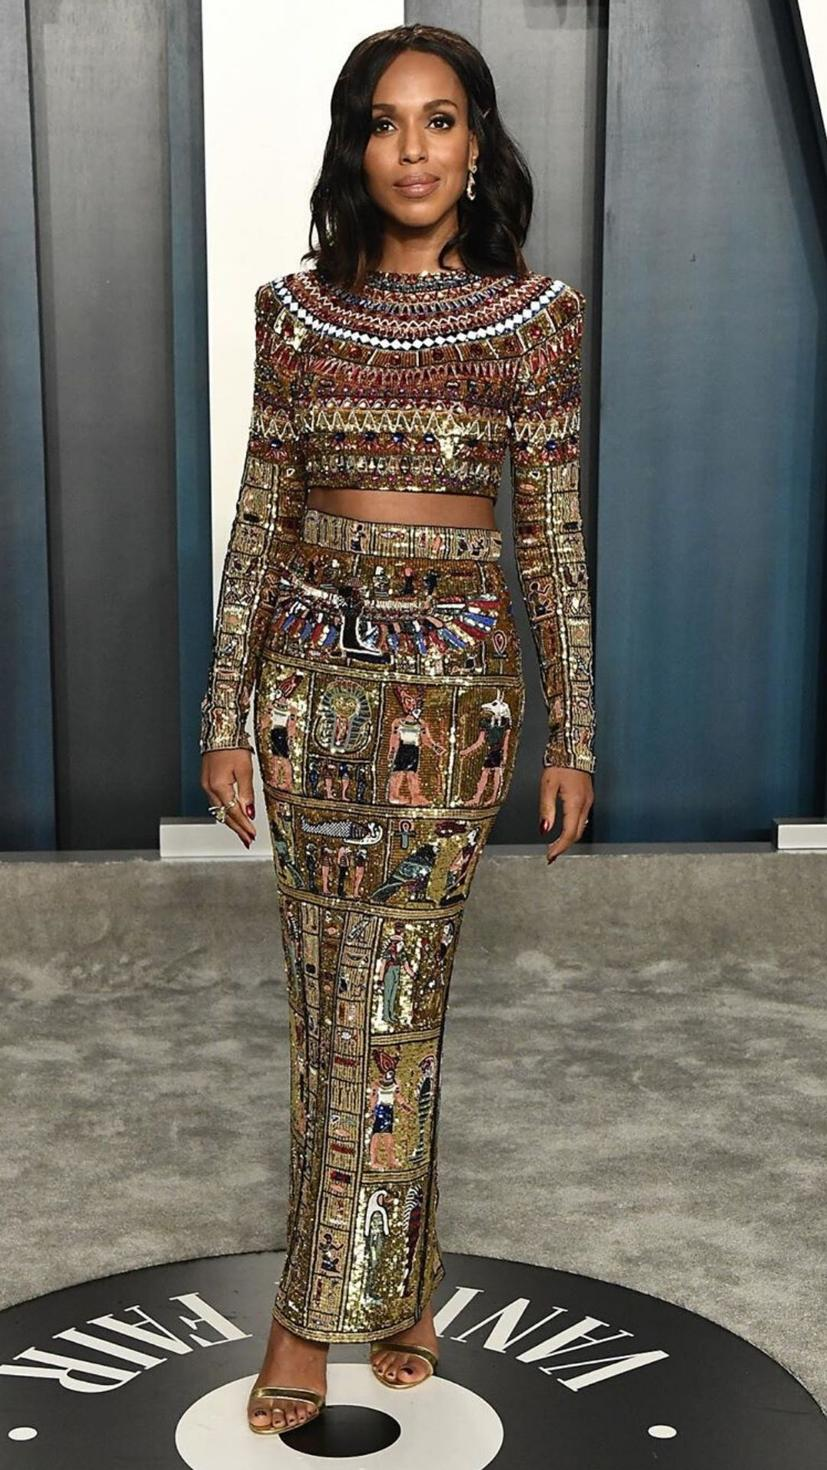 Kerry Washington wears Zuhair Murad Spring 2020 Haute Couture